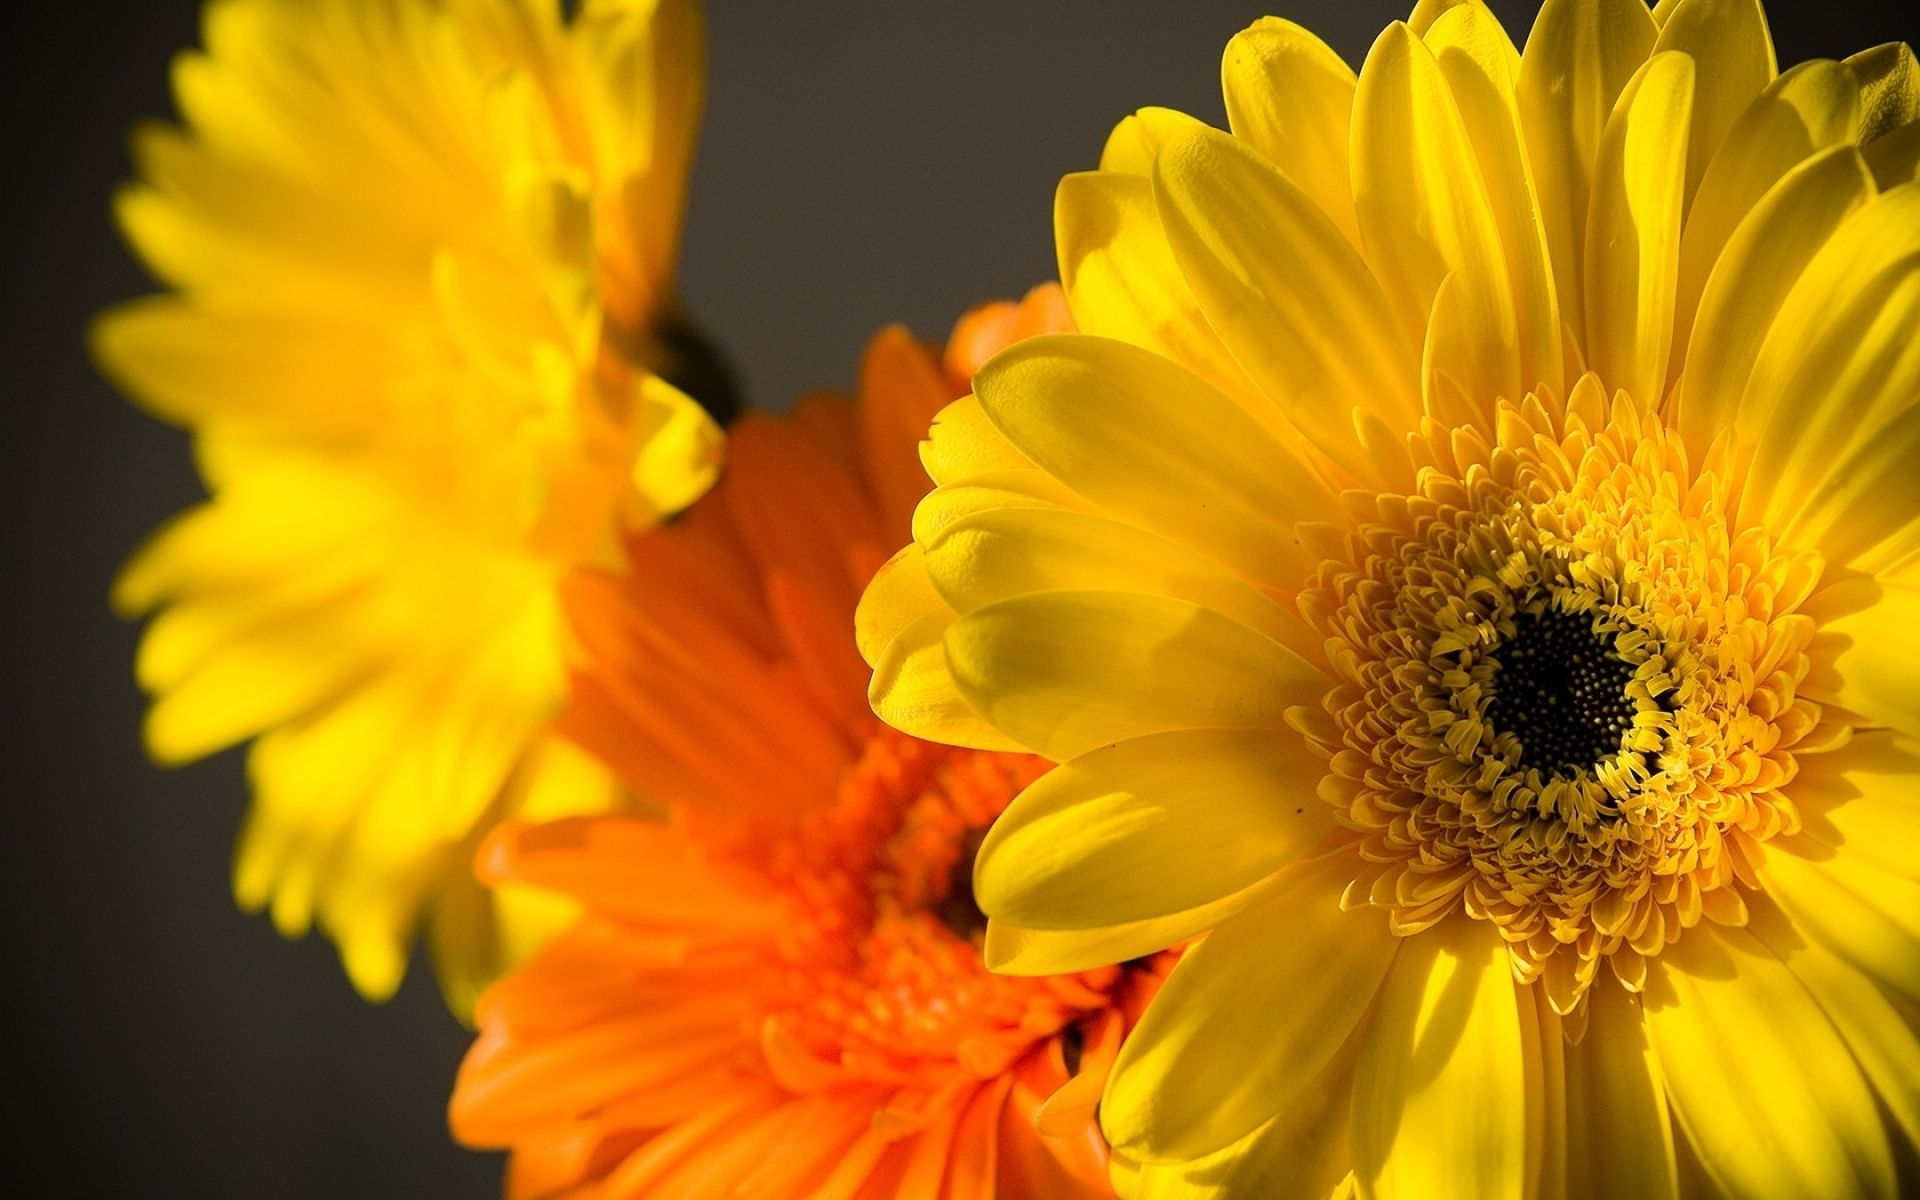 Download wallpaper macro petals yellow flowers resolution